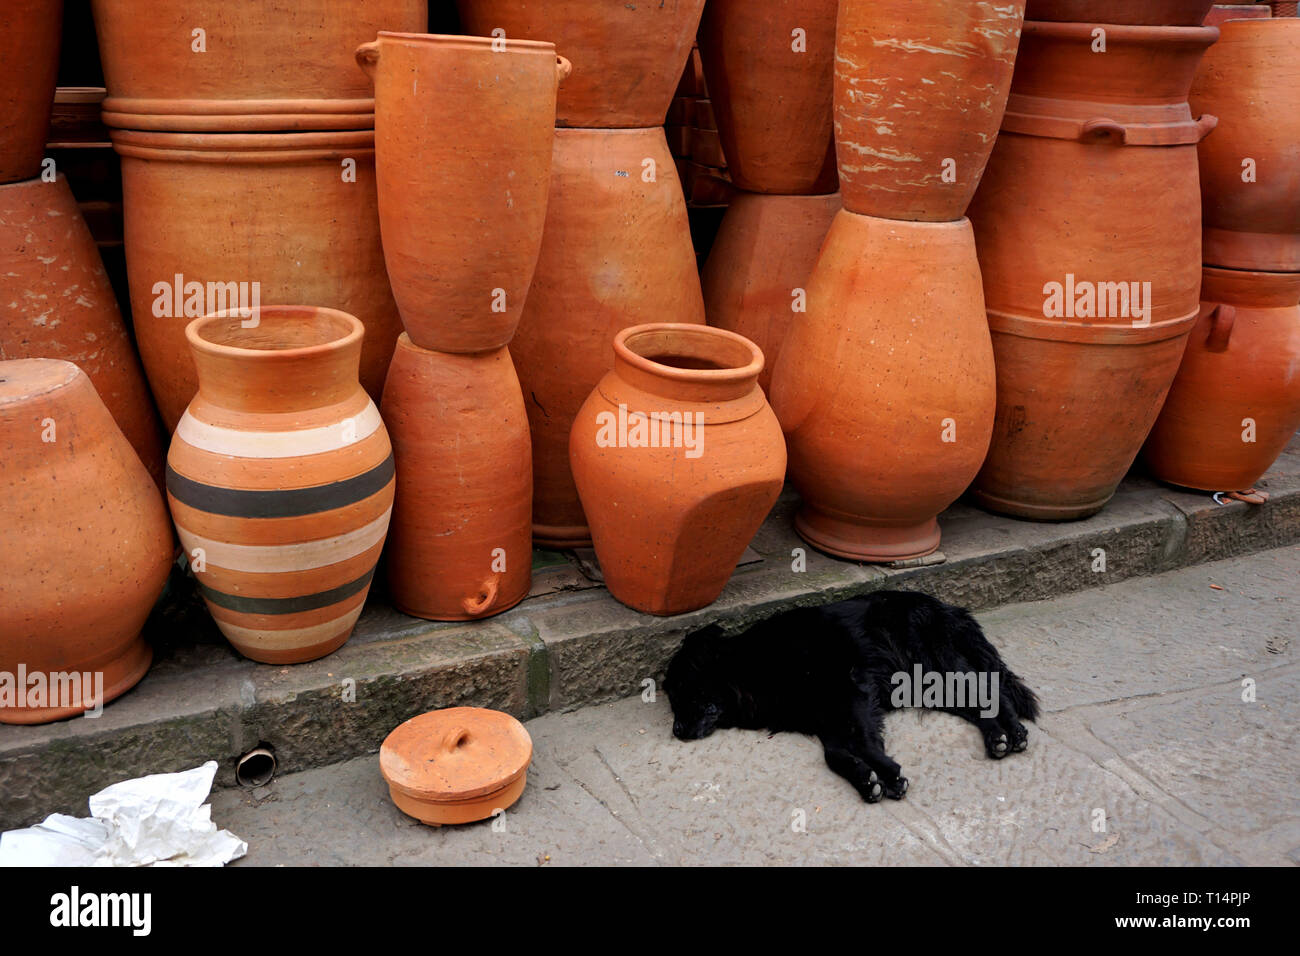 Black Dog asleep in Front of Earthenware outside a Store in Raquira, Colombia's Pottery Capital - Stock Image